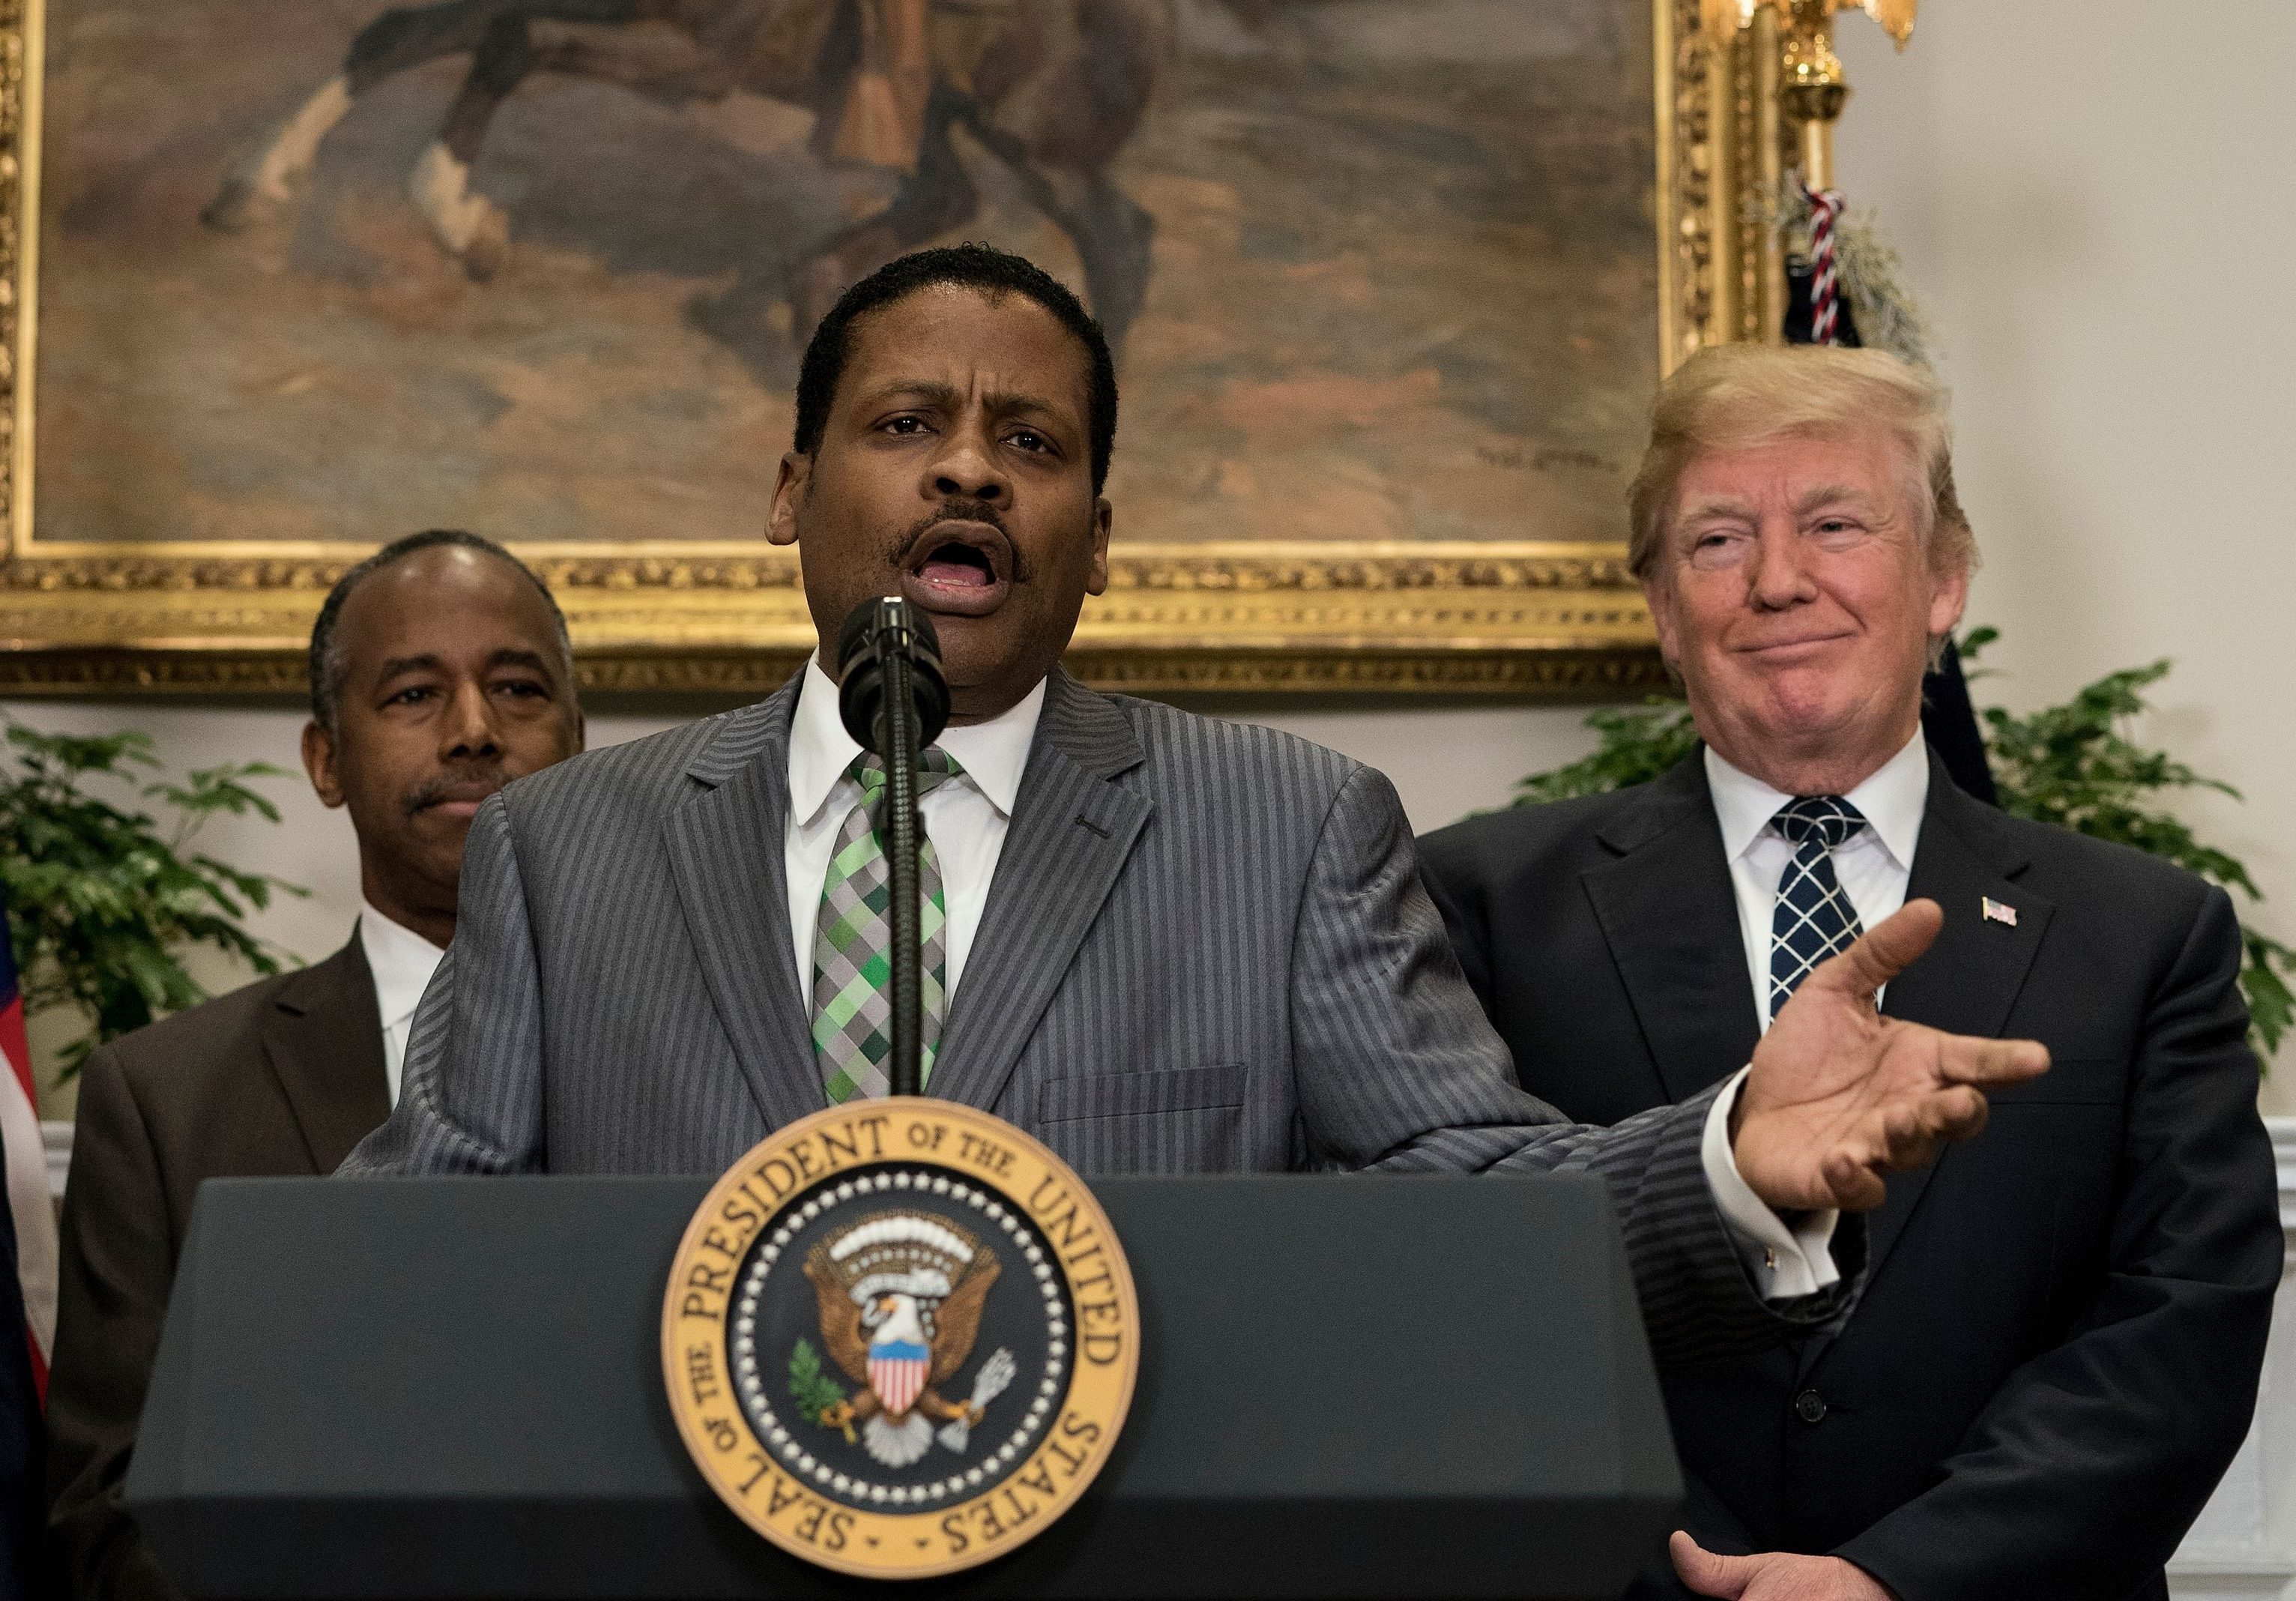 House Resolution Condemning Trump for Racism Holds Up Two Slave Owners as Philosophical Role Models